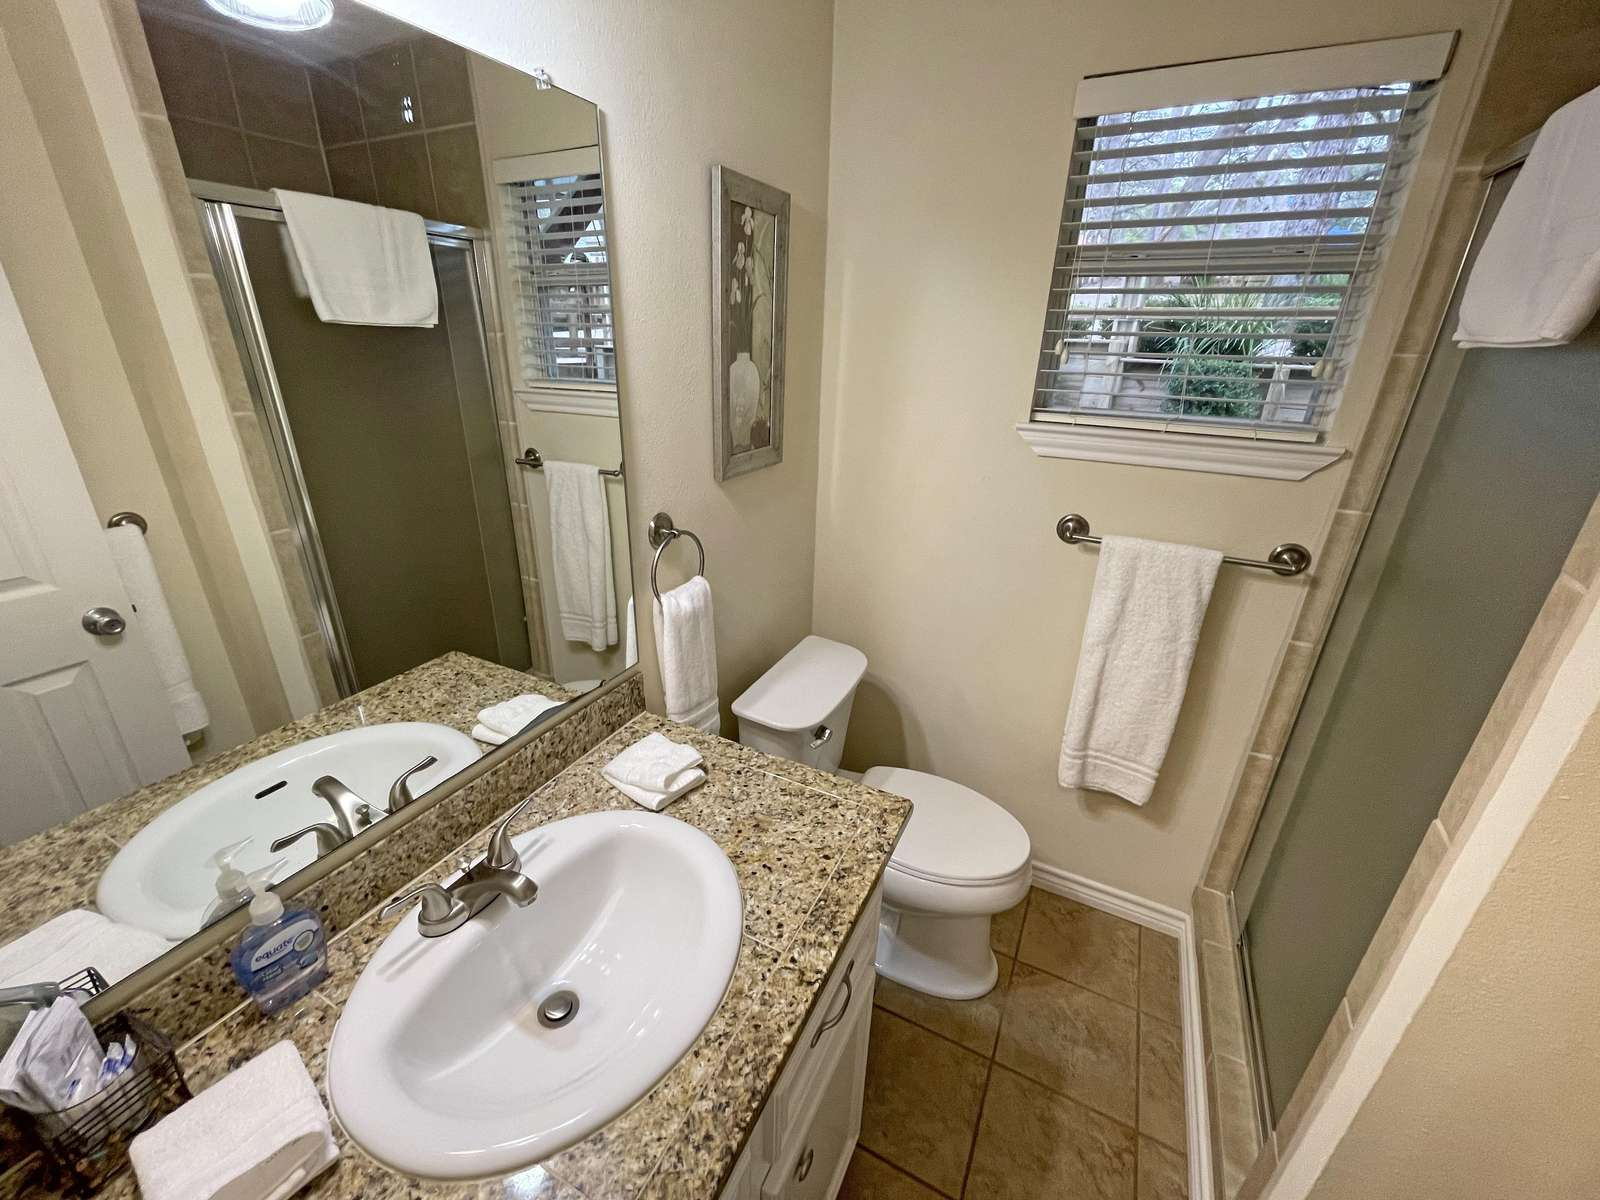 The lower level bathroom with tiled shower.